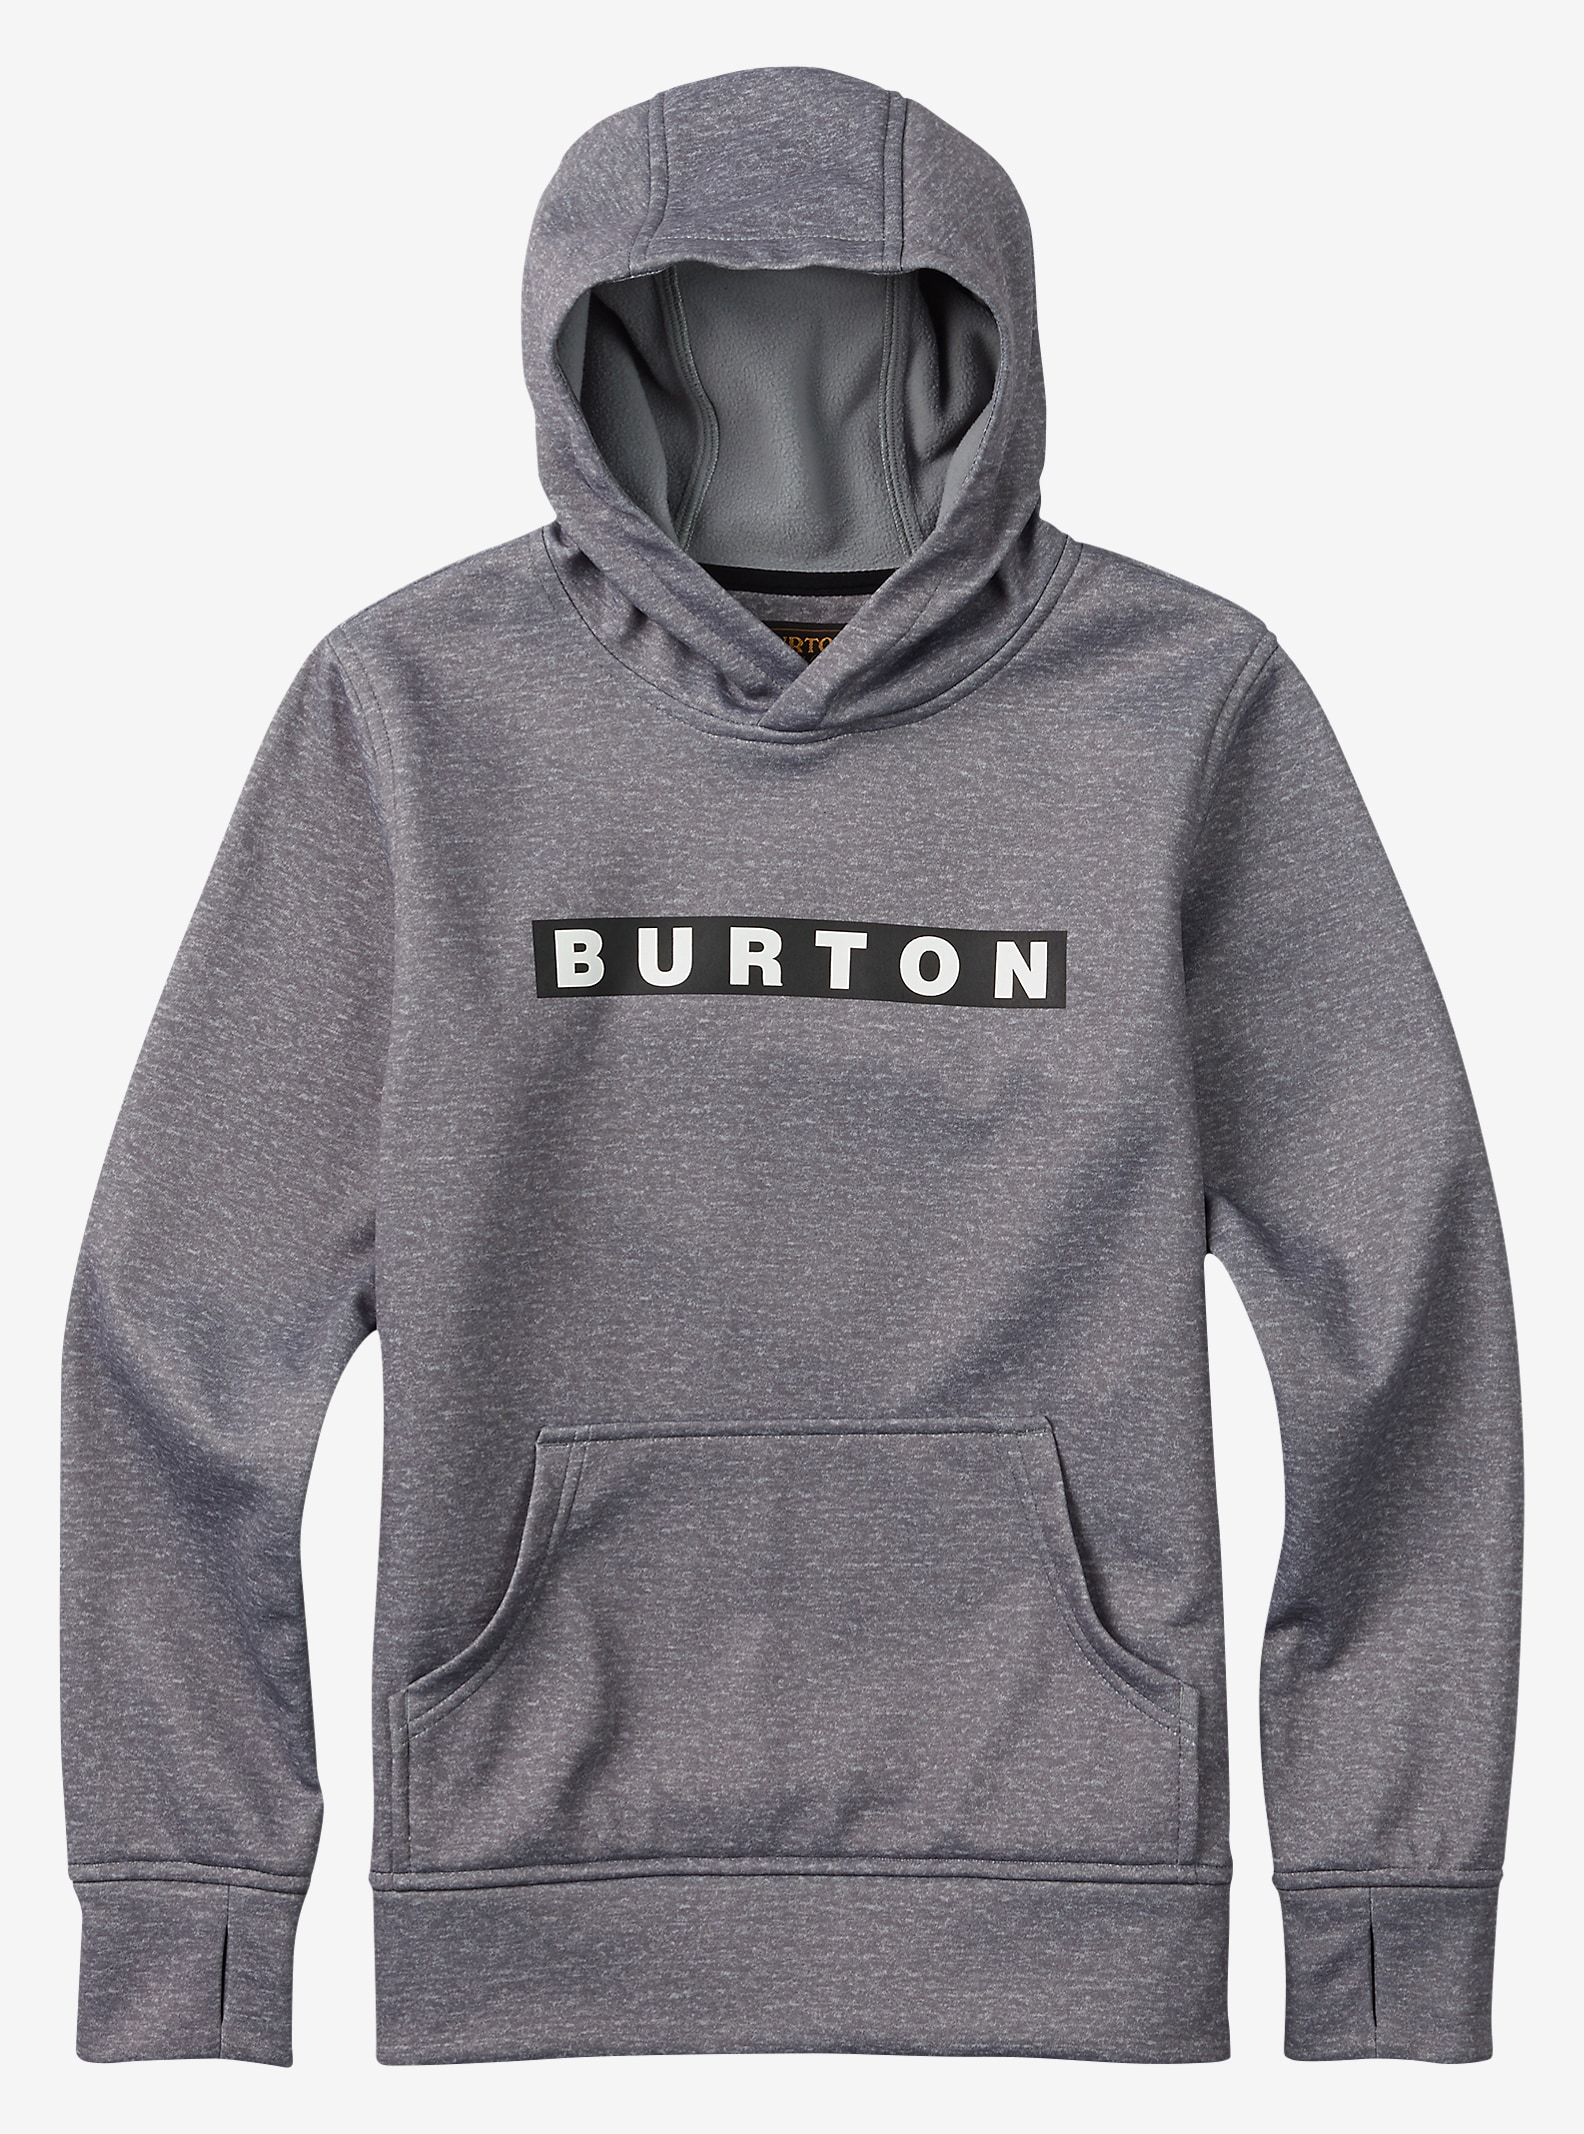 Burton Boys' Crown Bonded Pullover Hoodie shown in Monument Heather